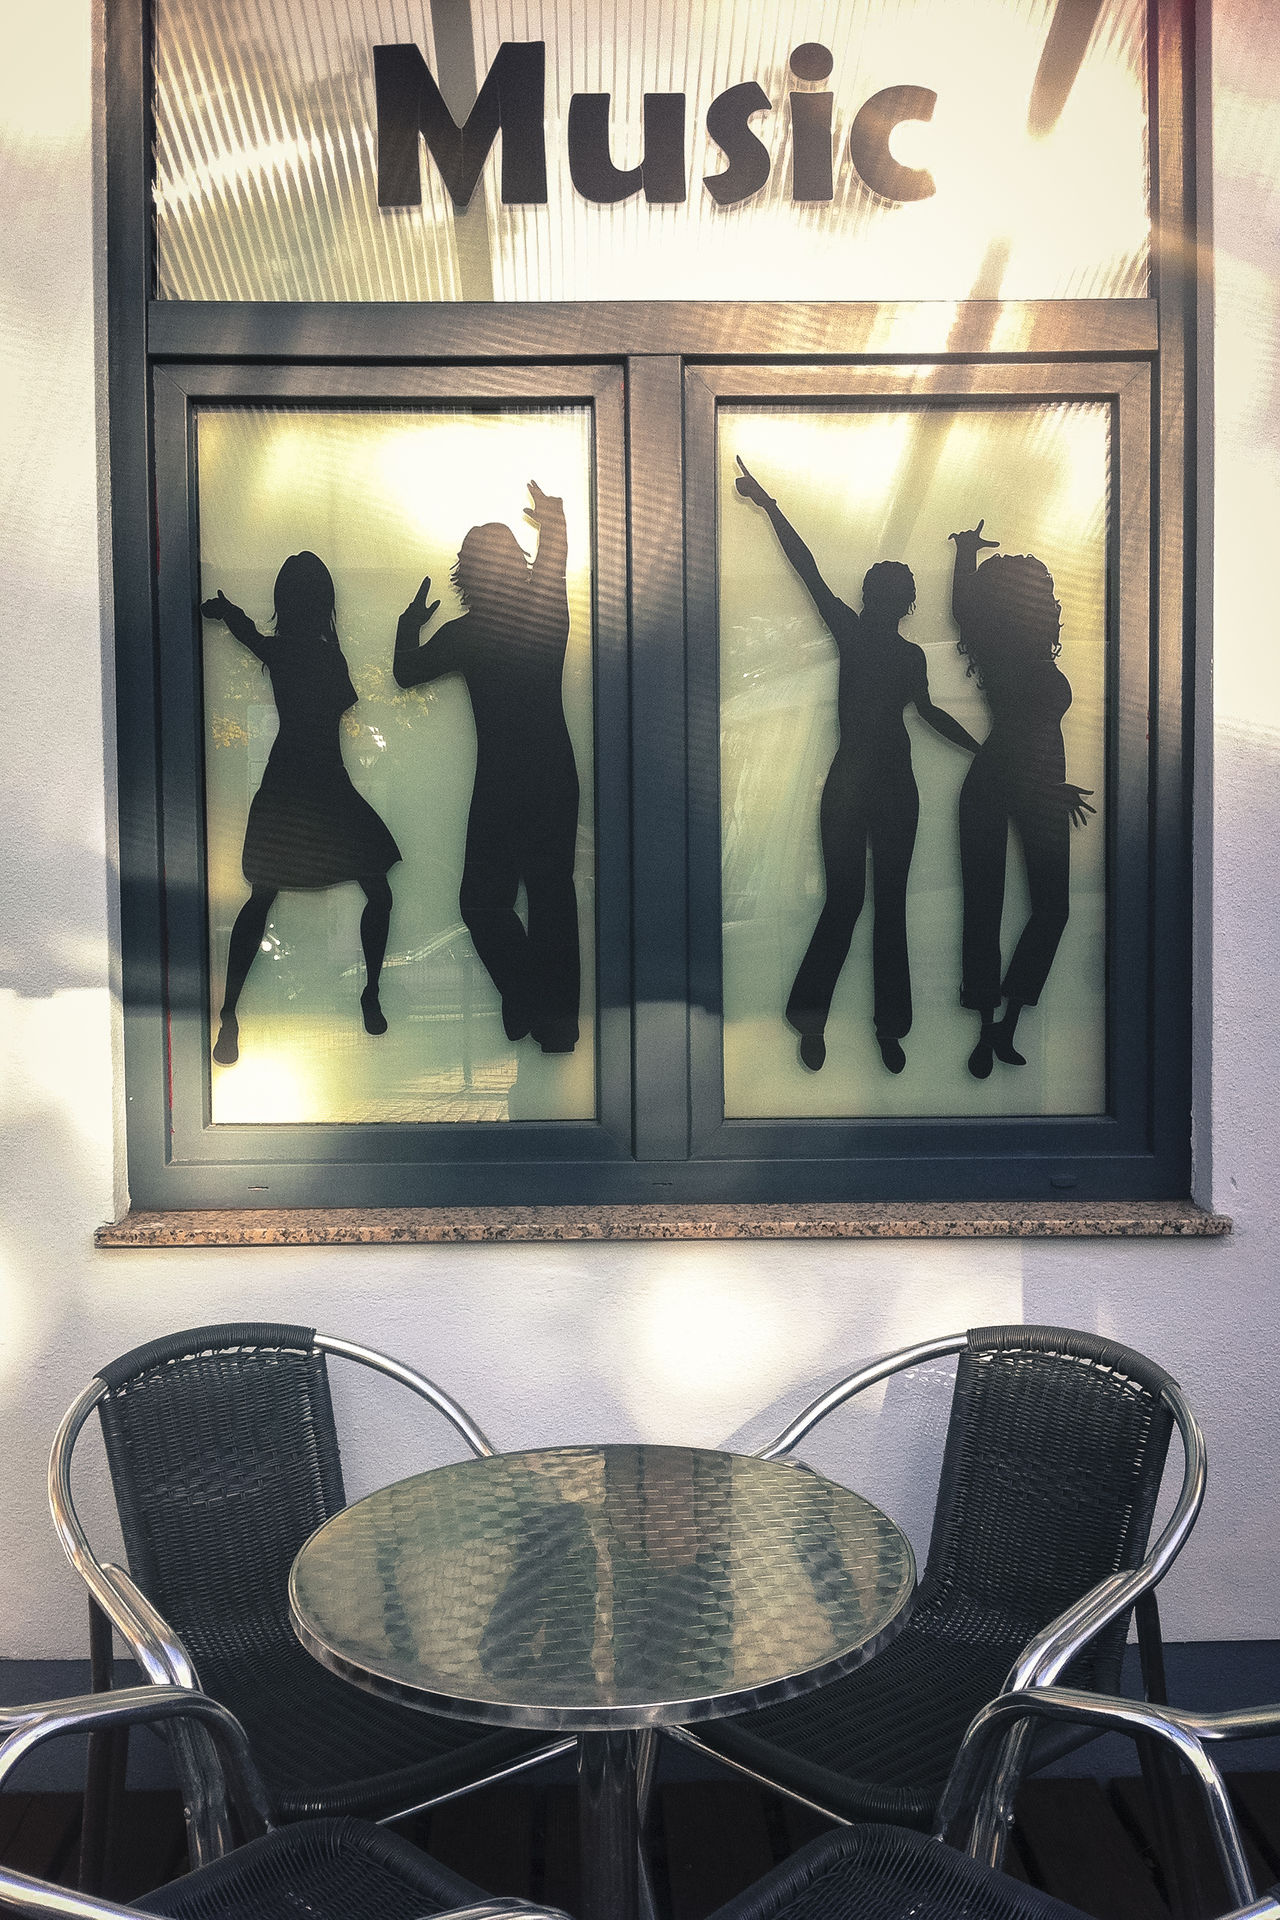 Round table with chairs outside music bar 'music' Bar Chairs Dancing Entertainment Outdoors Reflections Shadows Sun Table Text Vertical